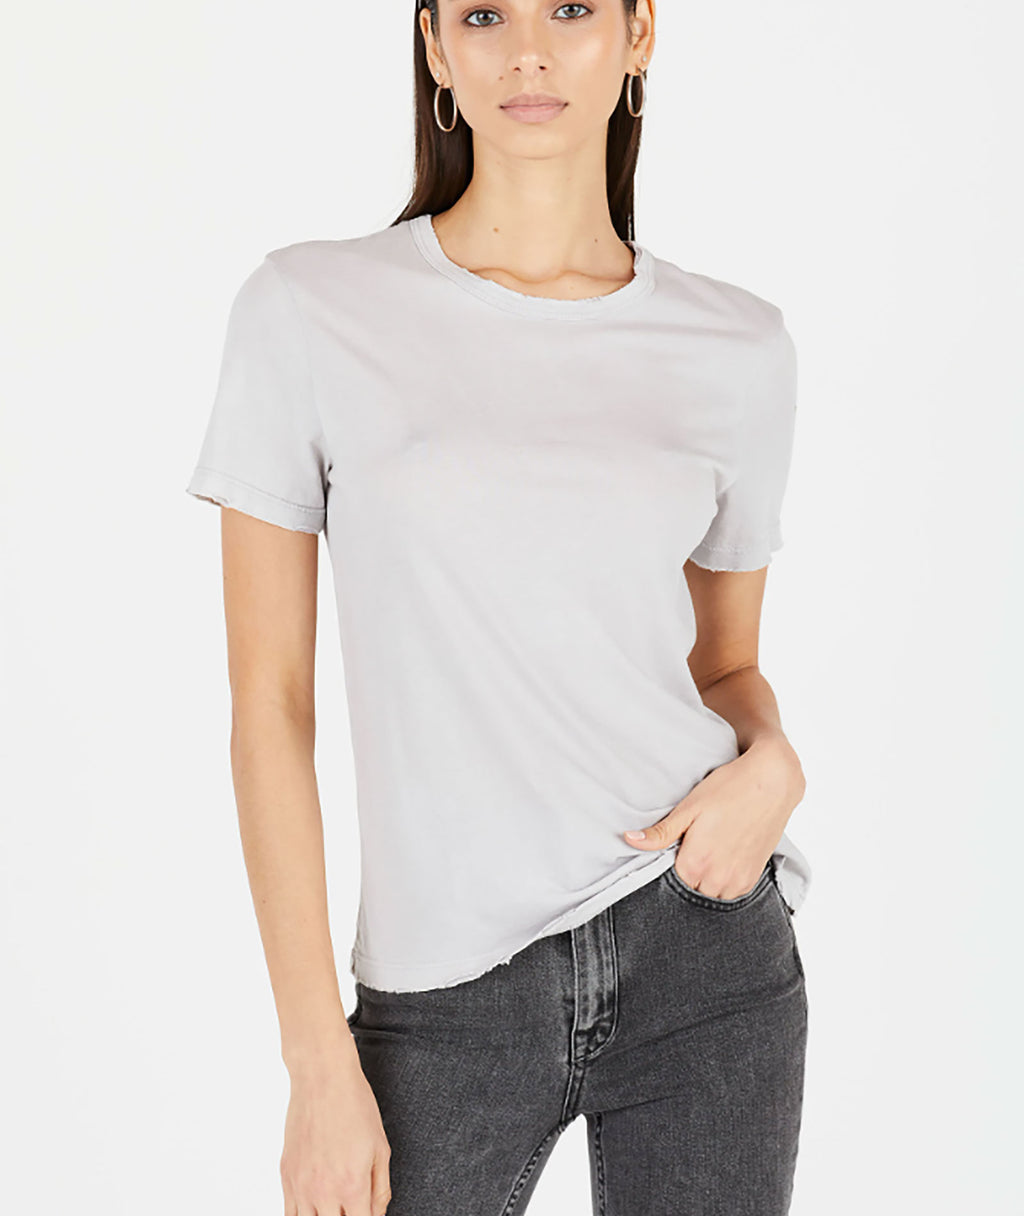 Cotton Citizen Women Vintage White Standard Tee